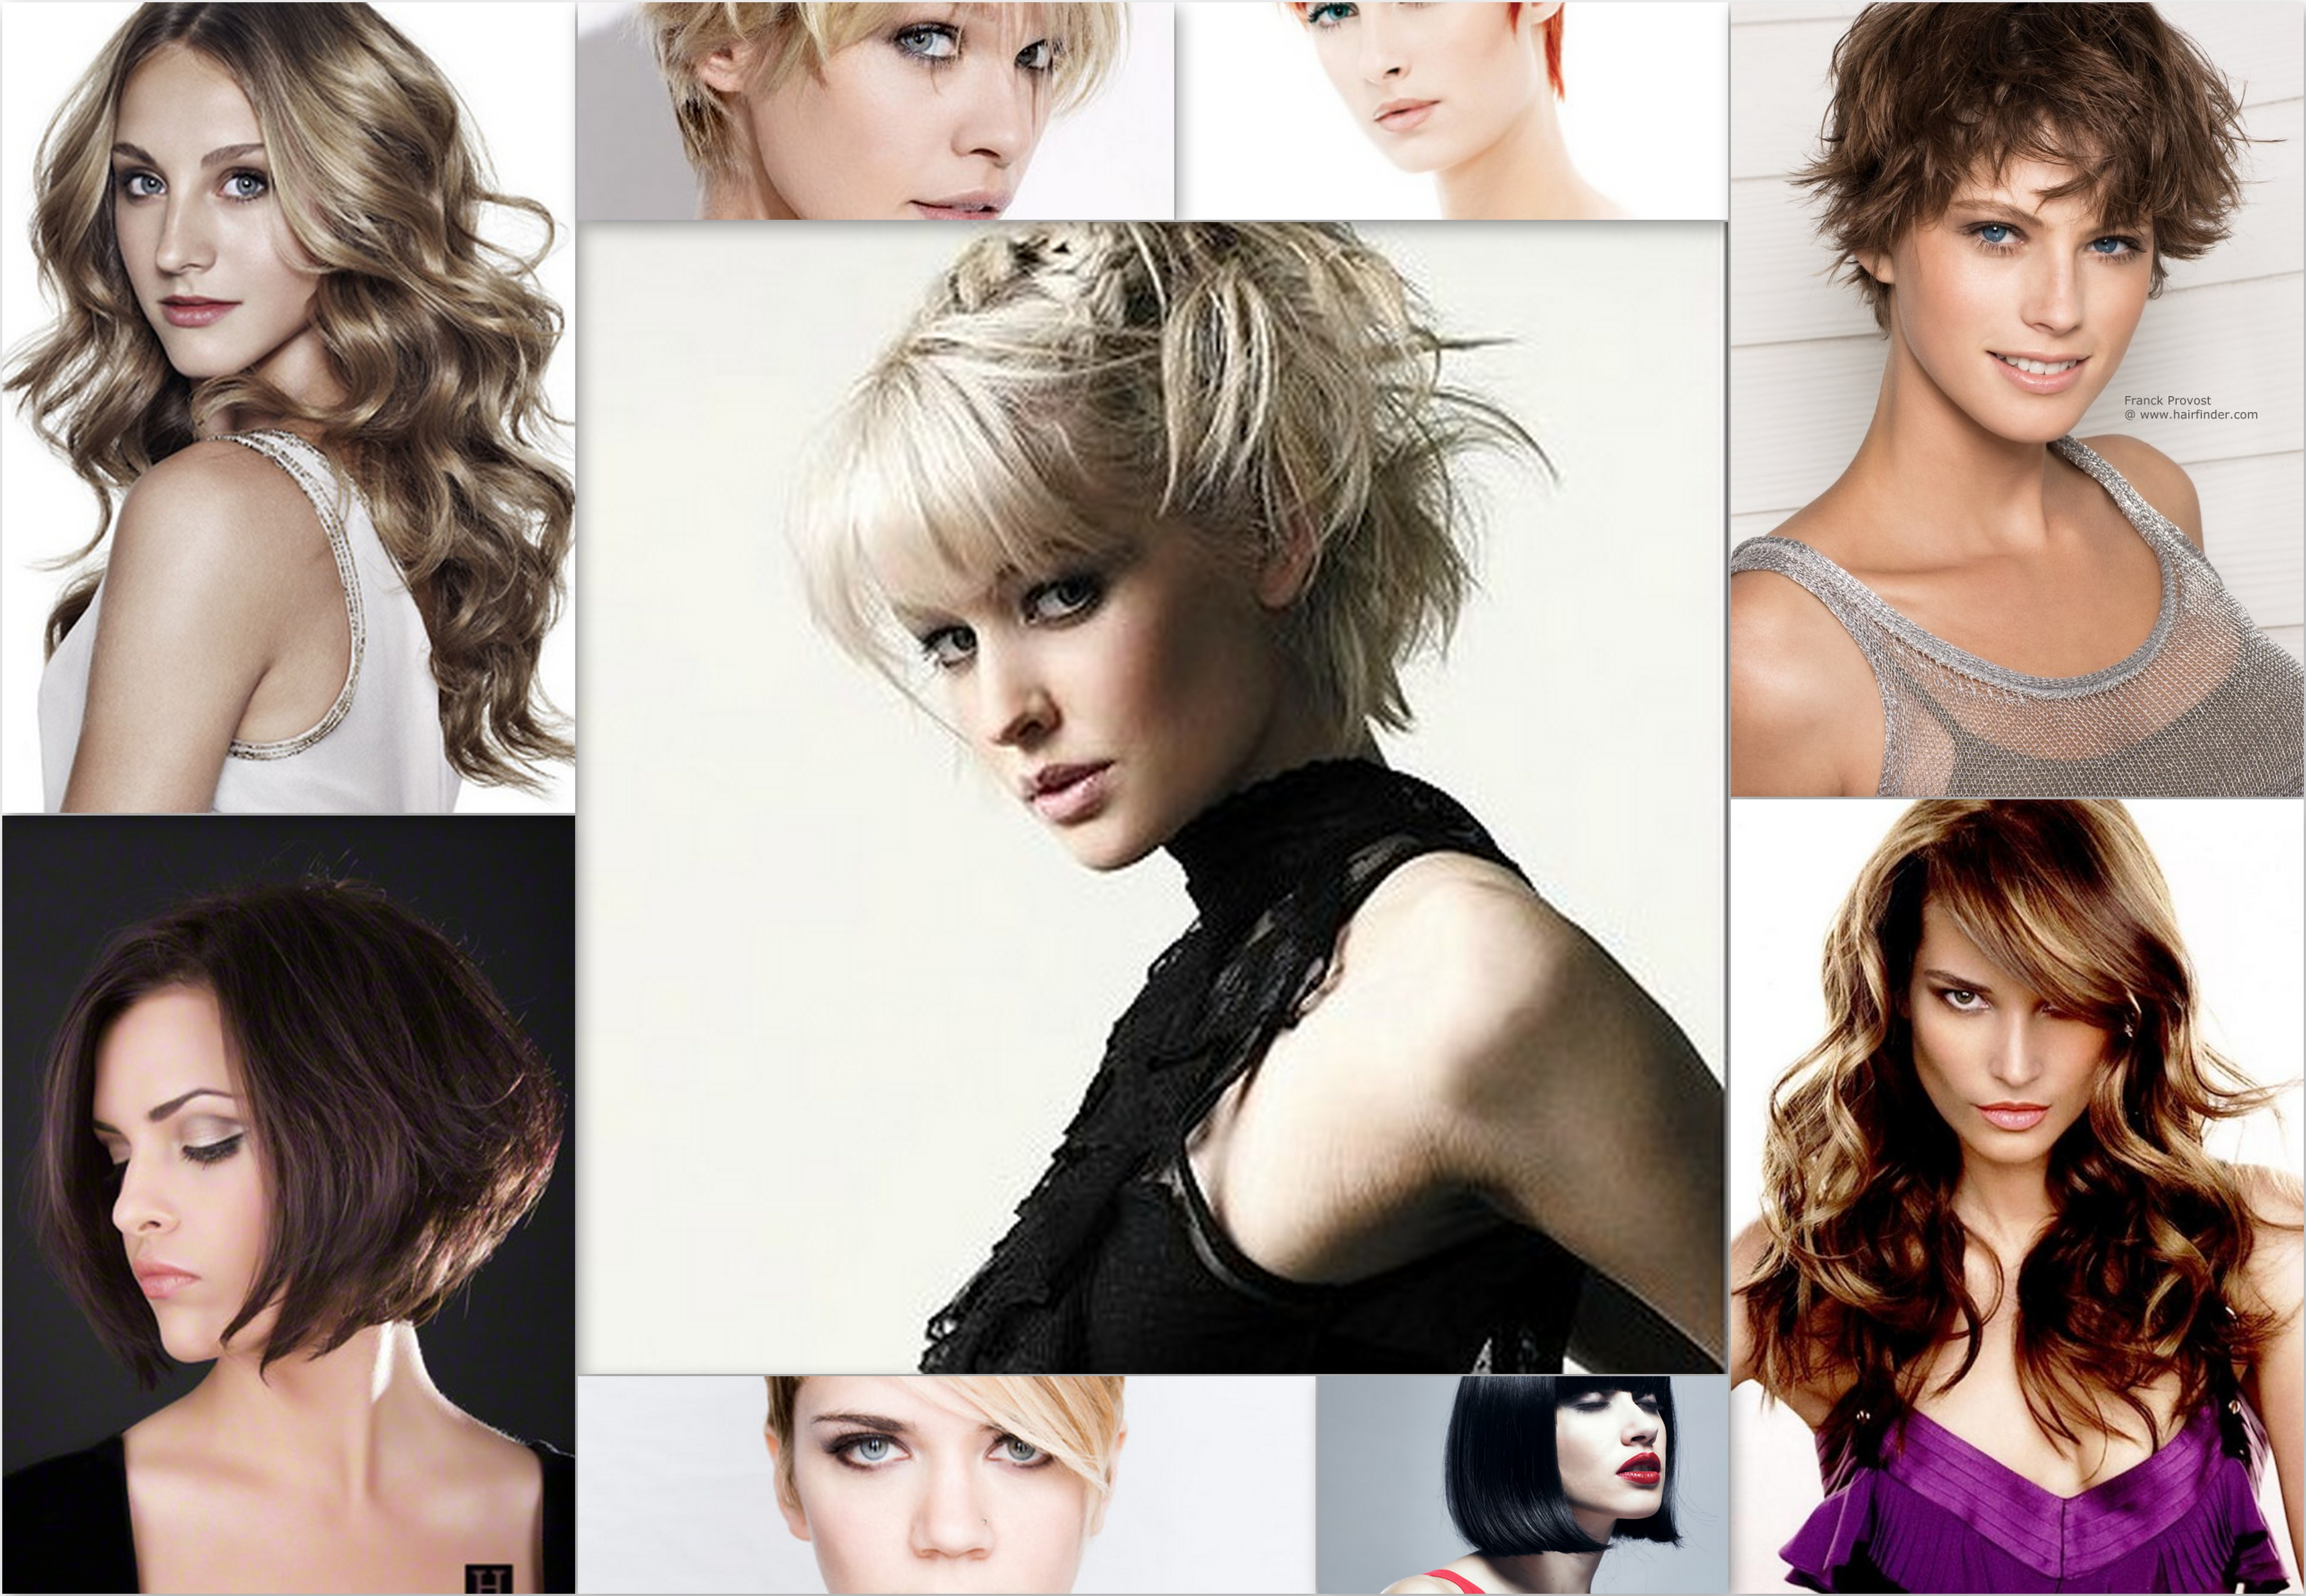 Hot and trendy haircut ideas our hair salon selected for you